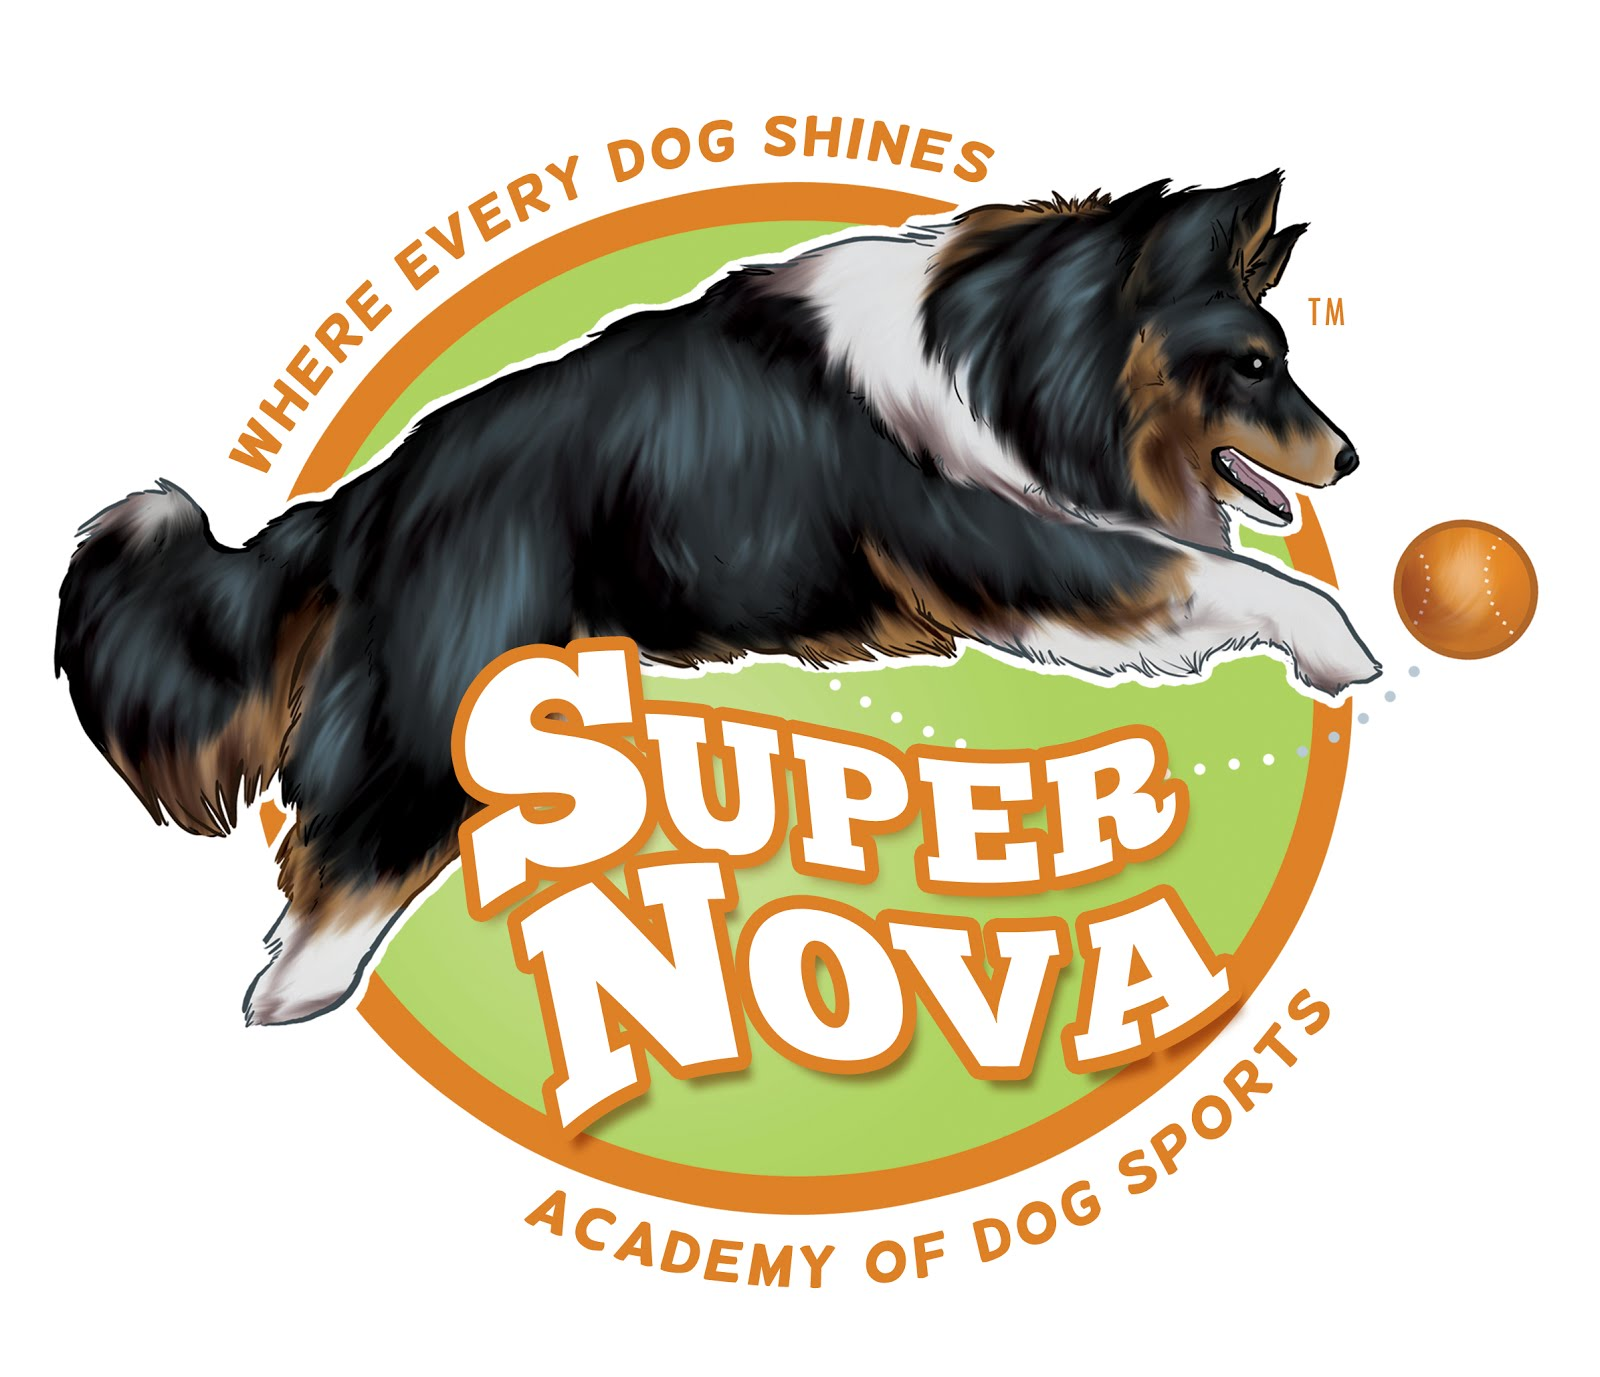 Specializes in puppy training, basic dog obedience training and dog agility training